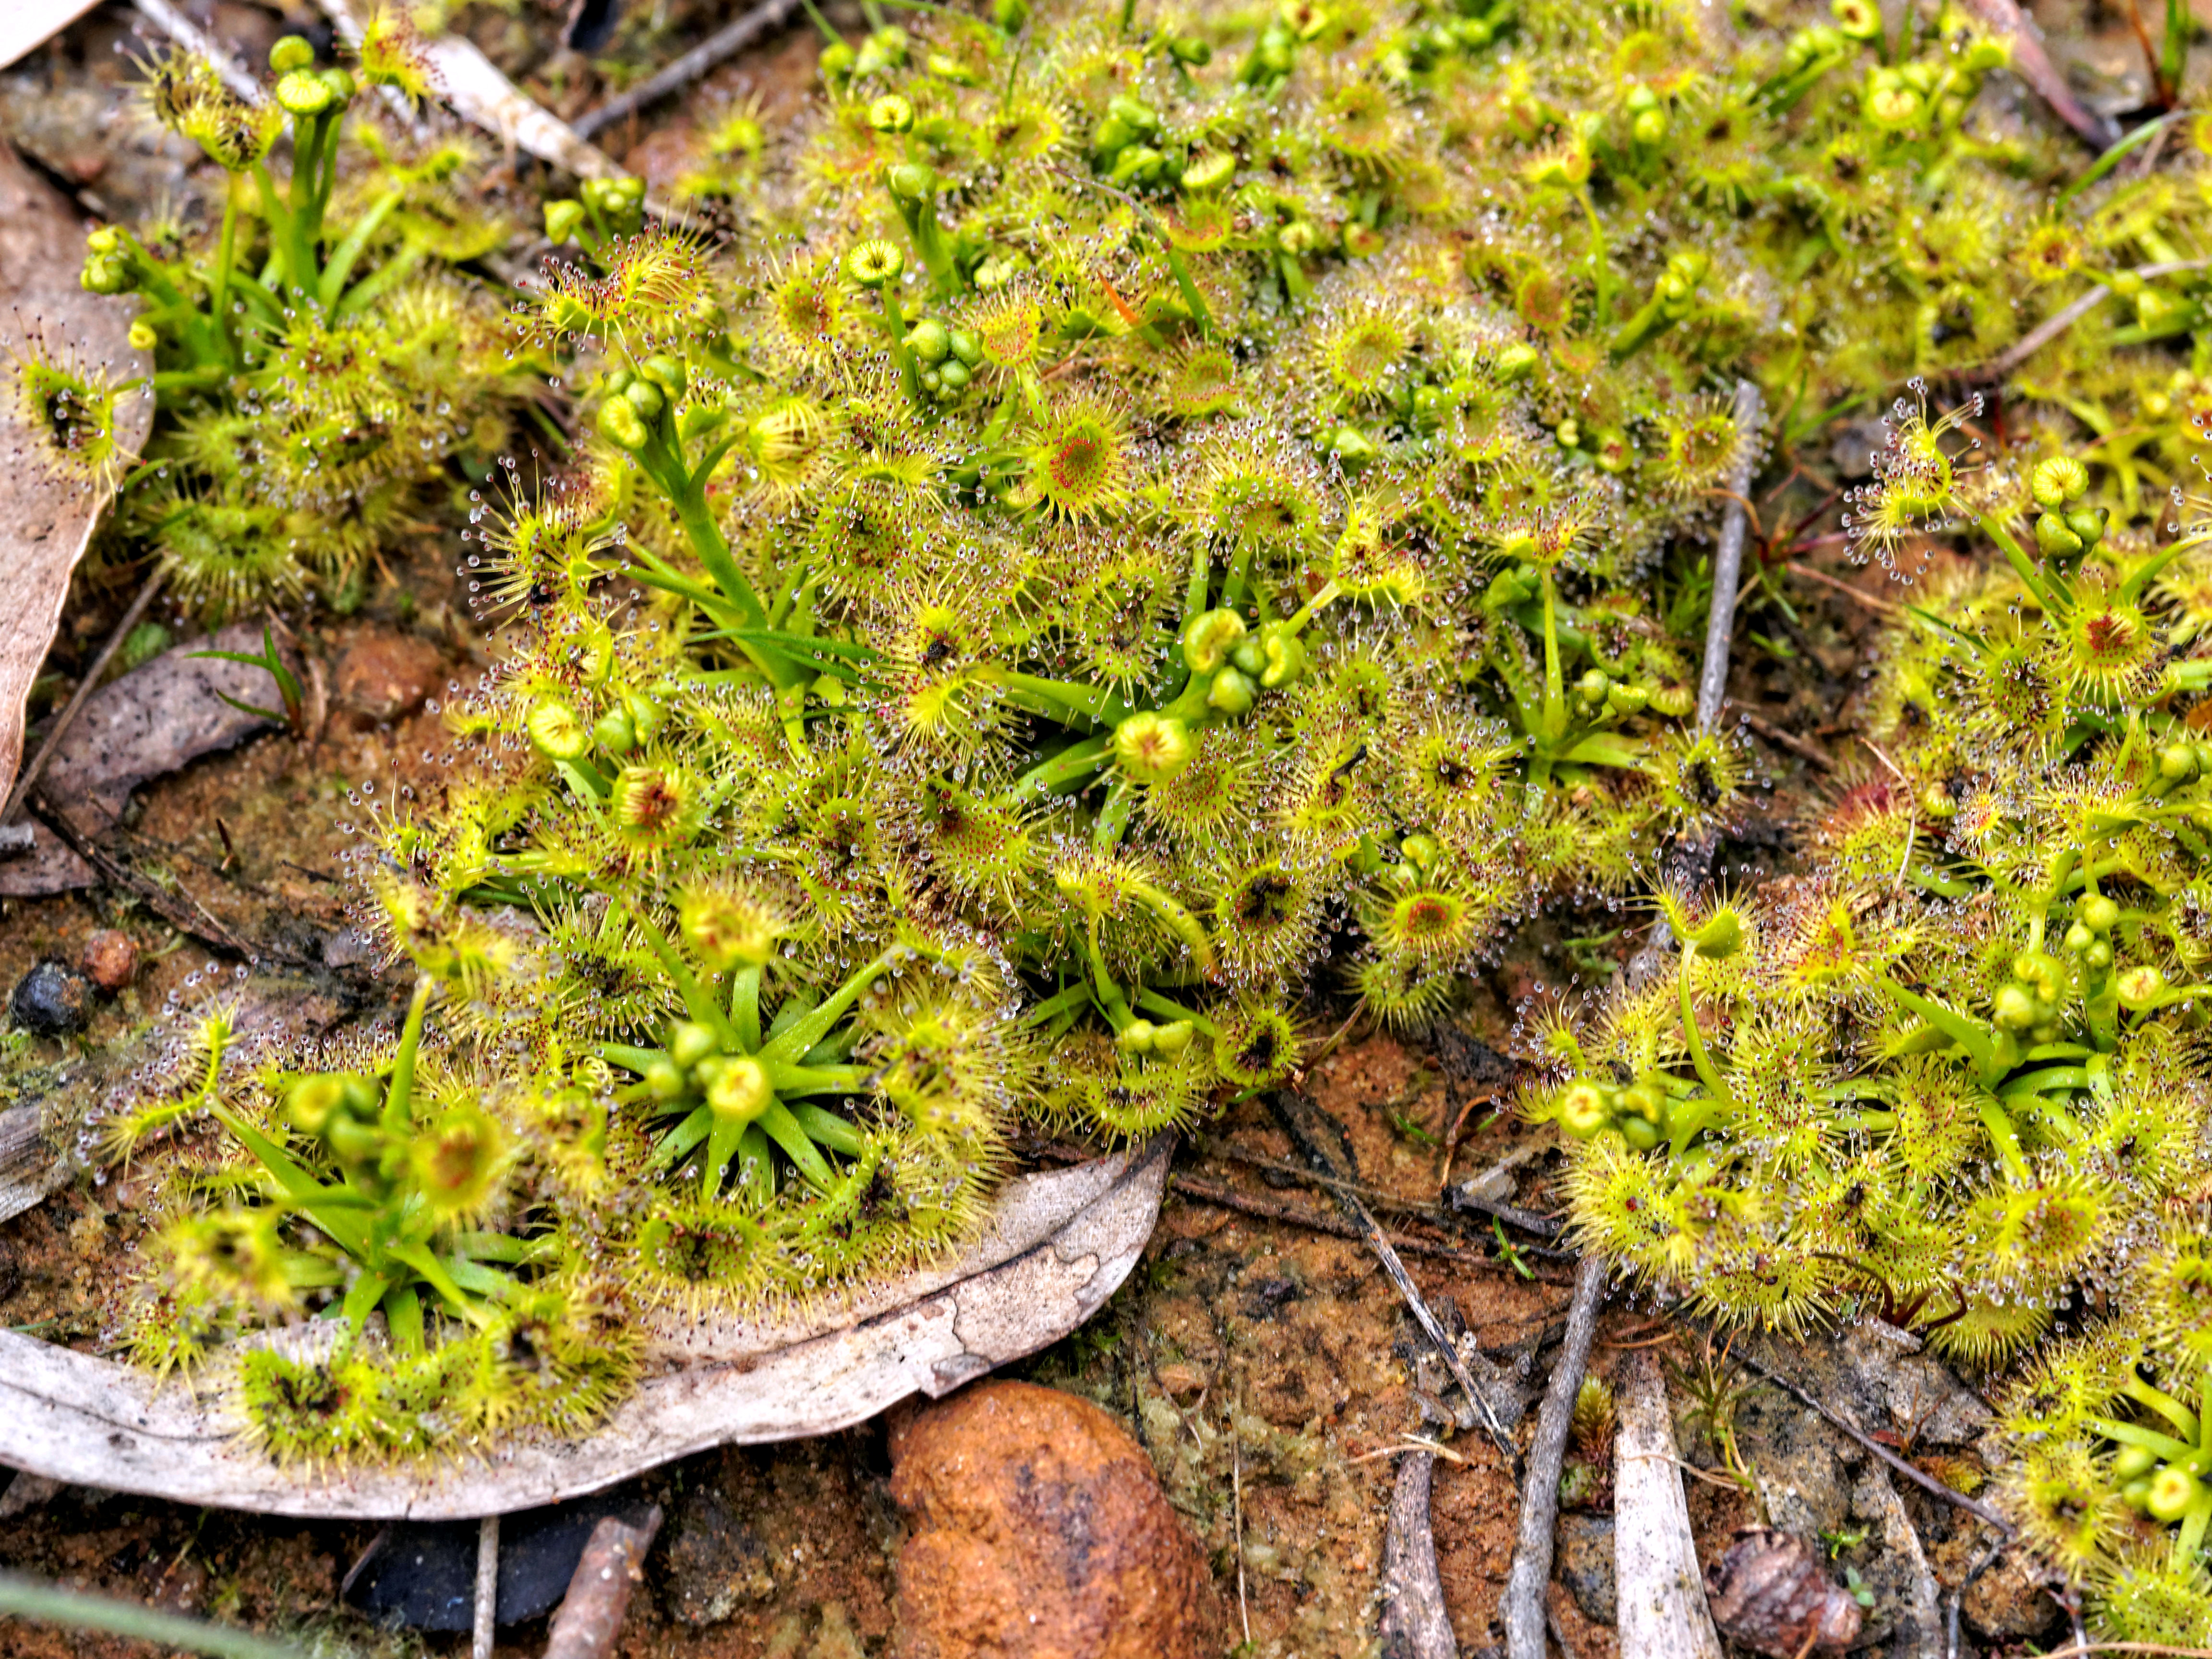 This should be Drosera.jpeg.  Is it missing?